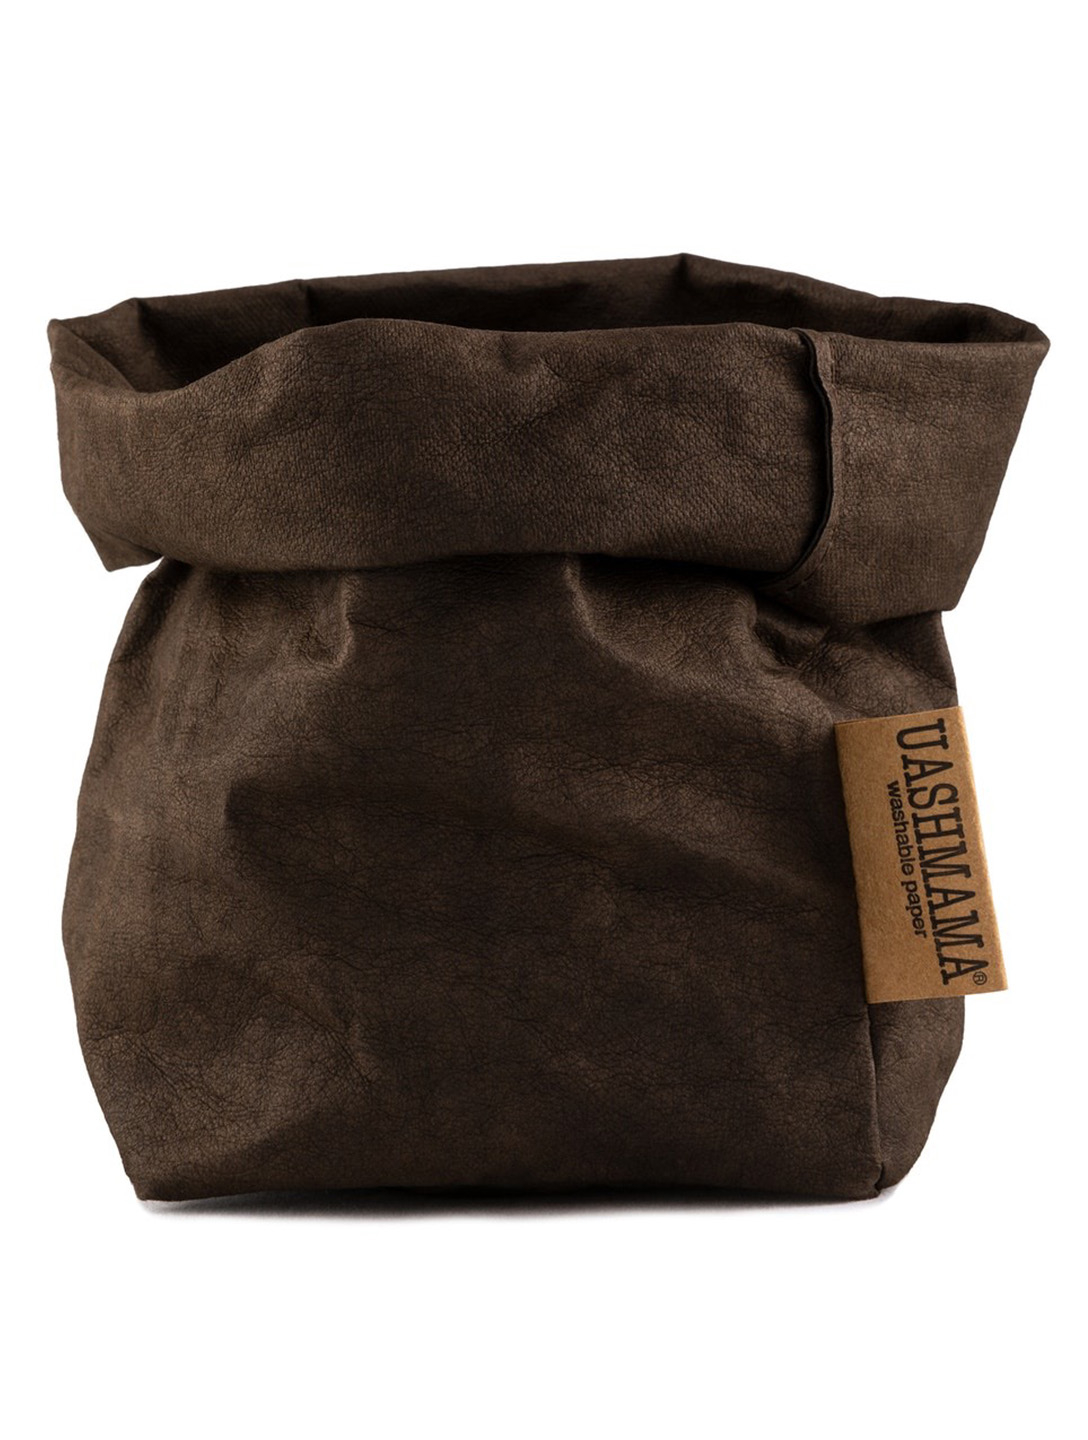 UASHMAMA Small Paper Bag H Project Brown